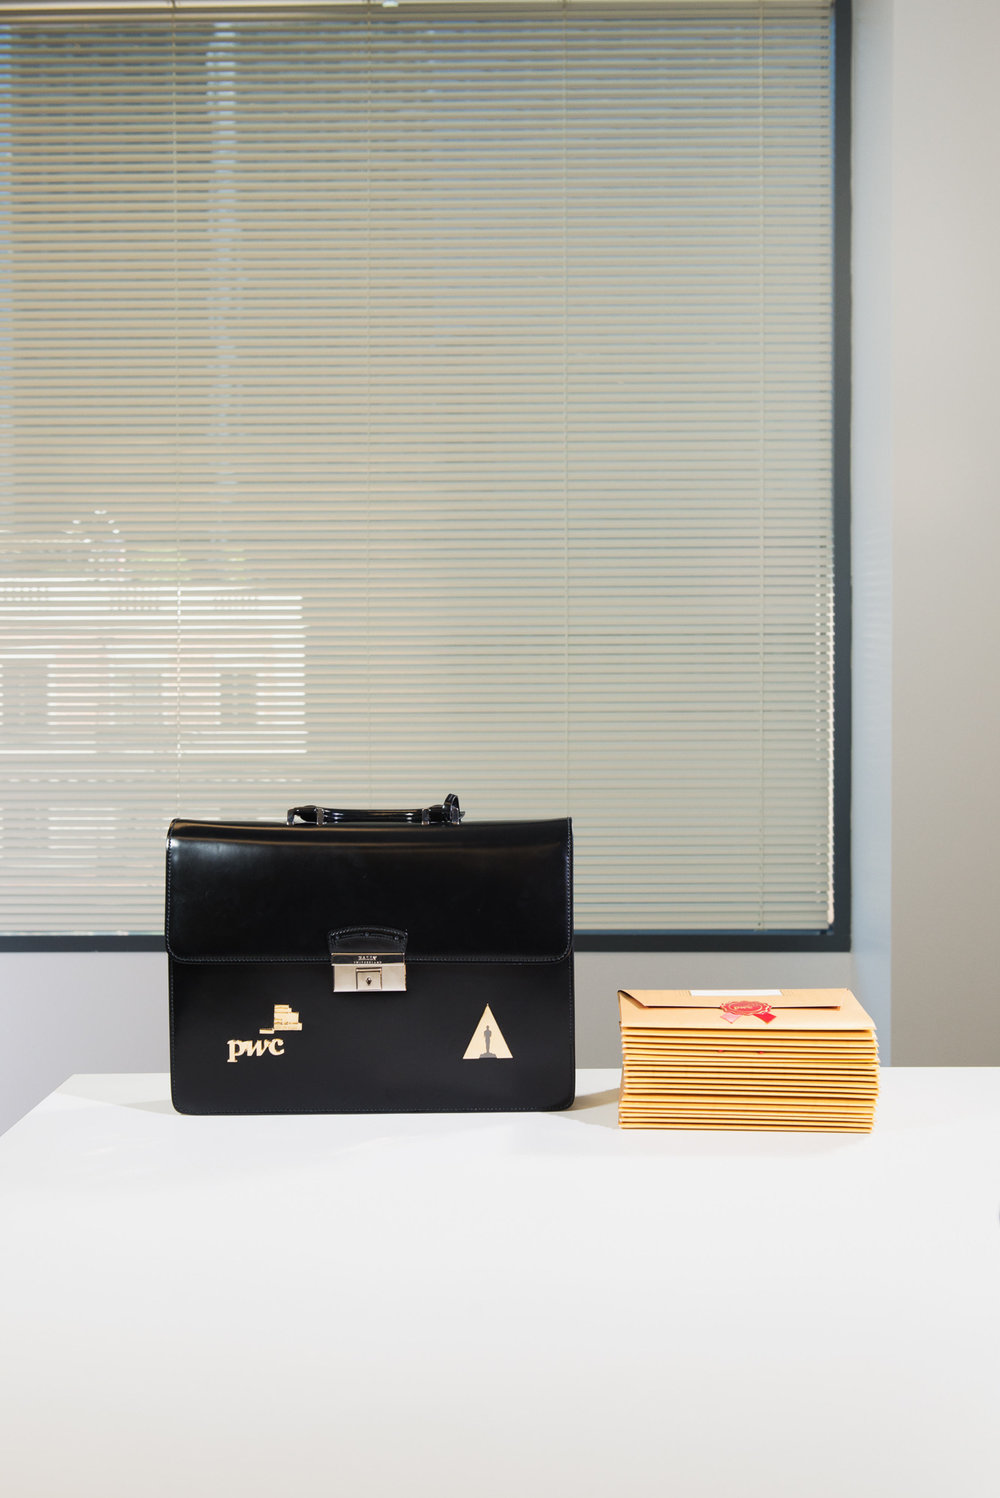 Ballots and briefcase